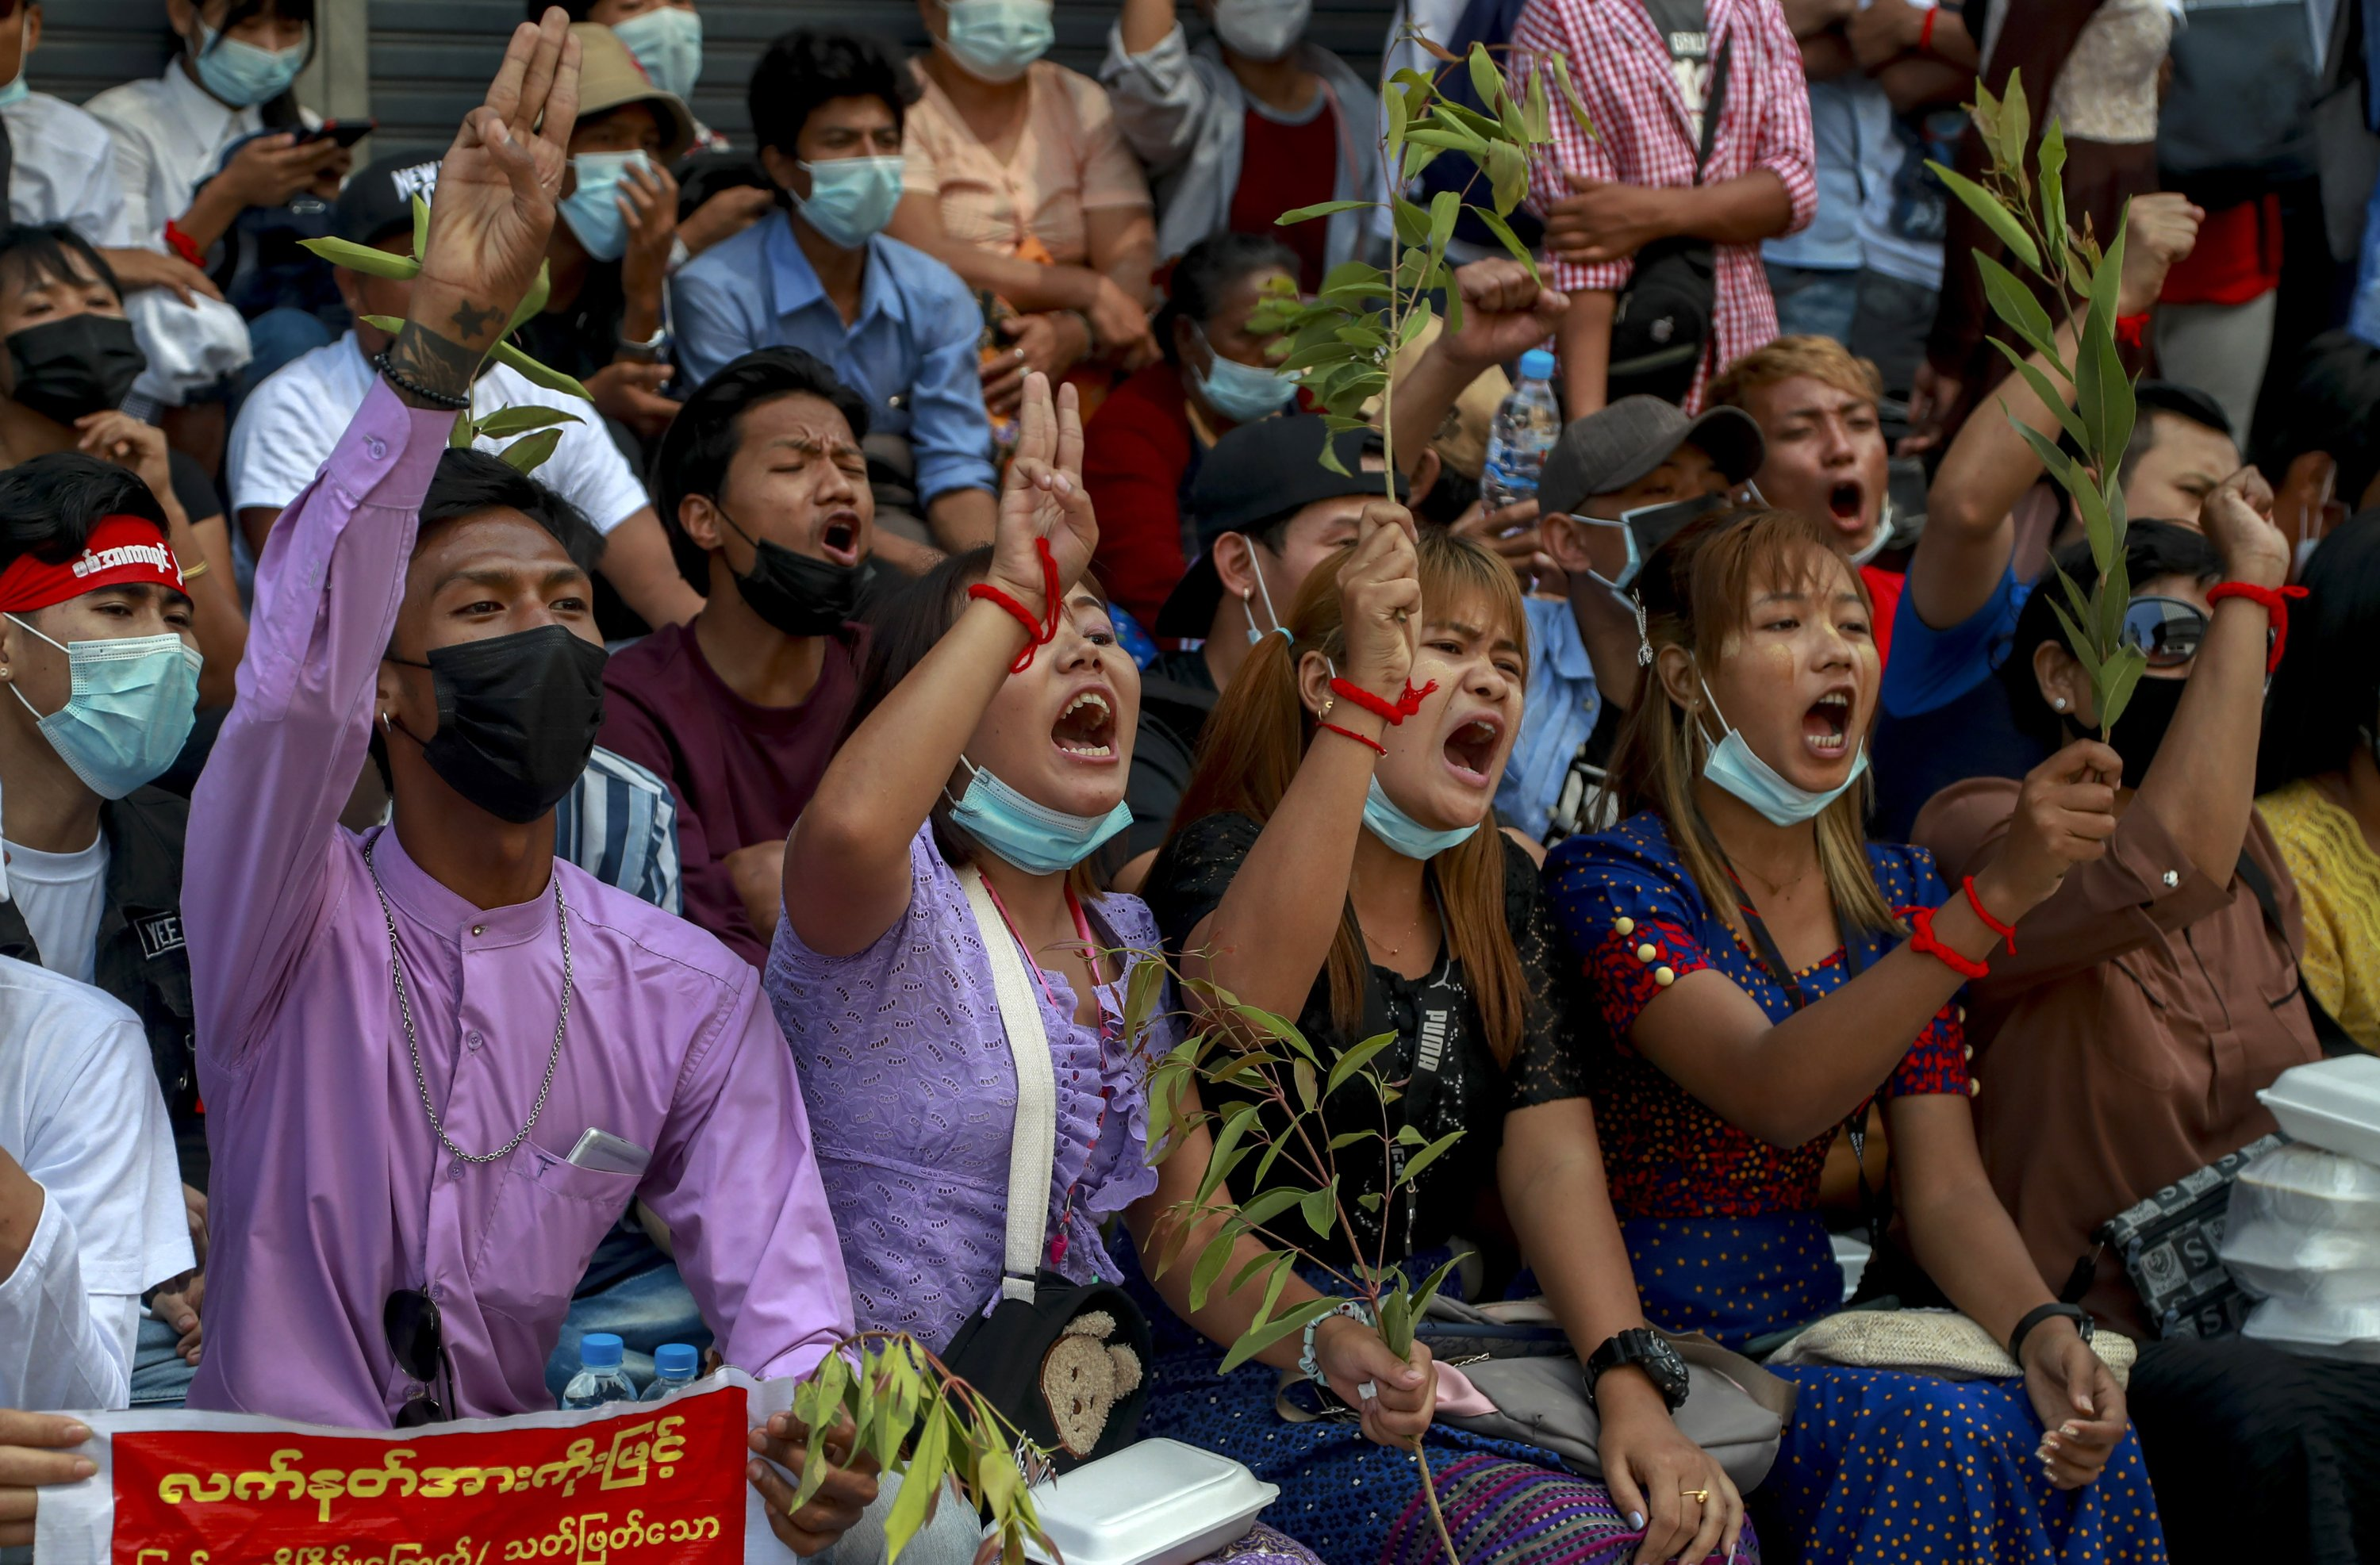 EXPLAINER: Why is Facebook banning Myanmar military pages? – Associated Press